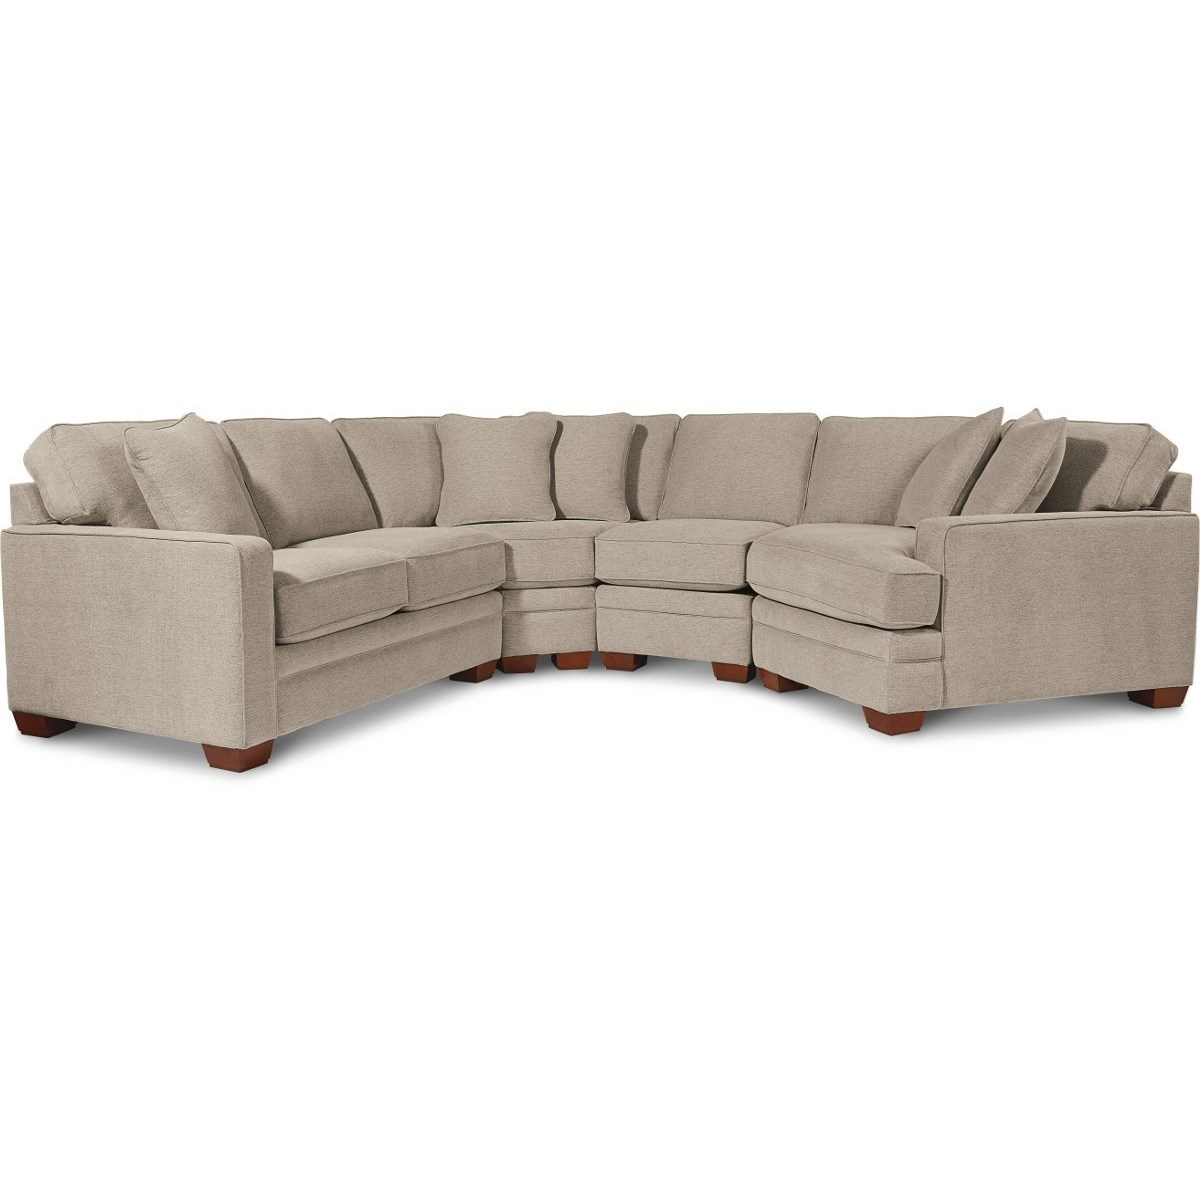 Picture of: La Z Boy Meyer Contemporary 4 Piece Sectional With Left Sitting Cuddler Pedigo Furniture Sectional Sofas